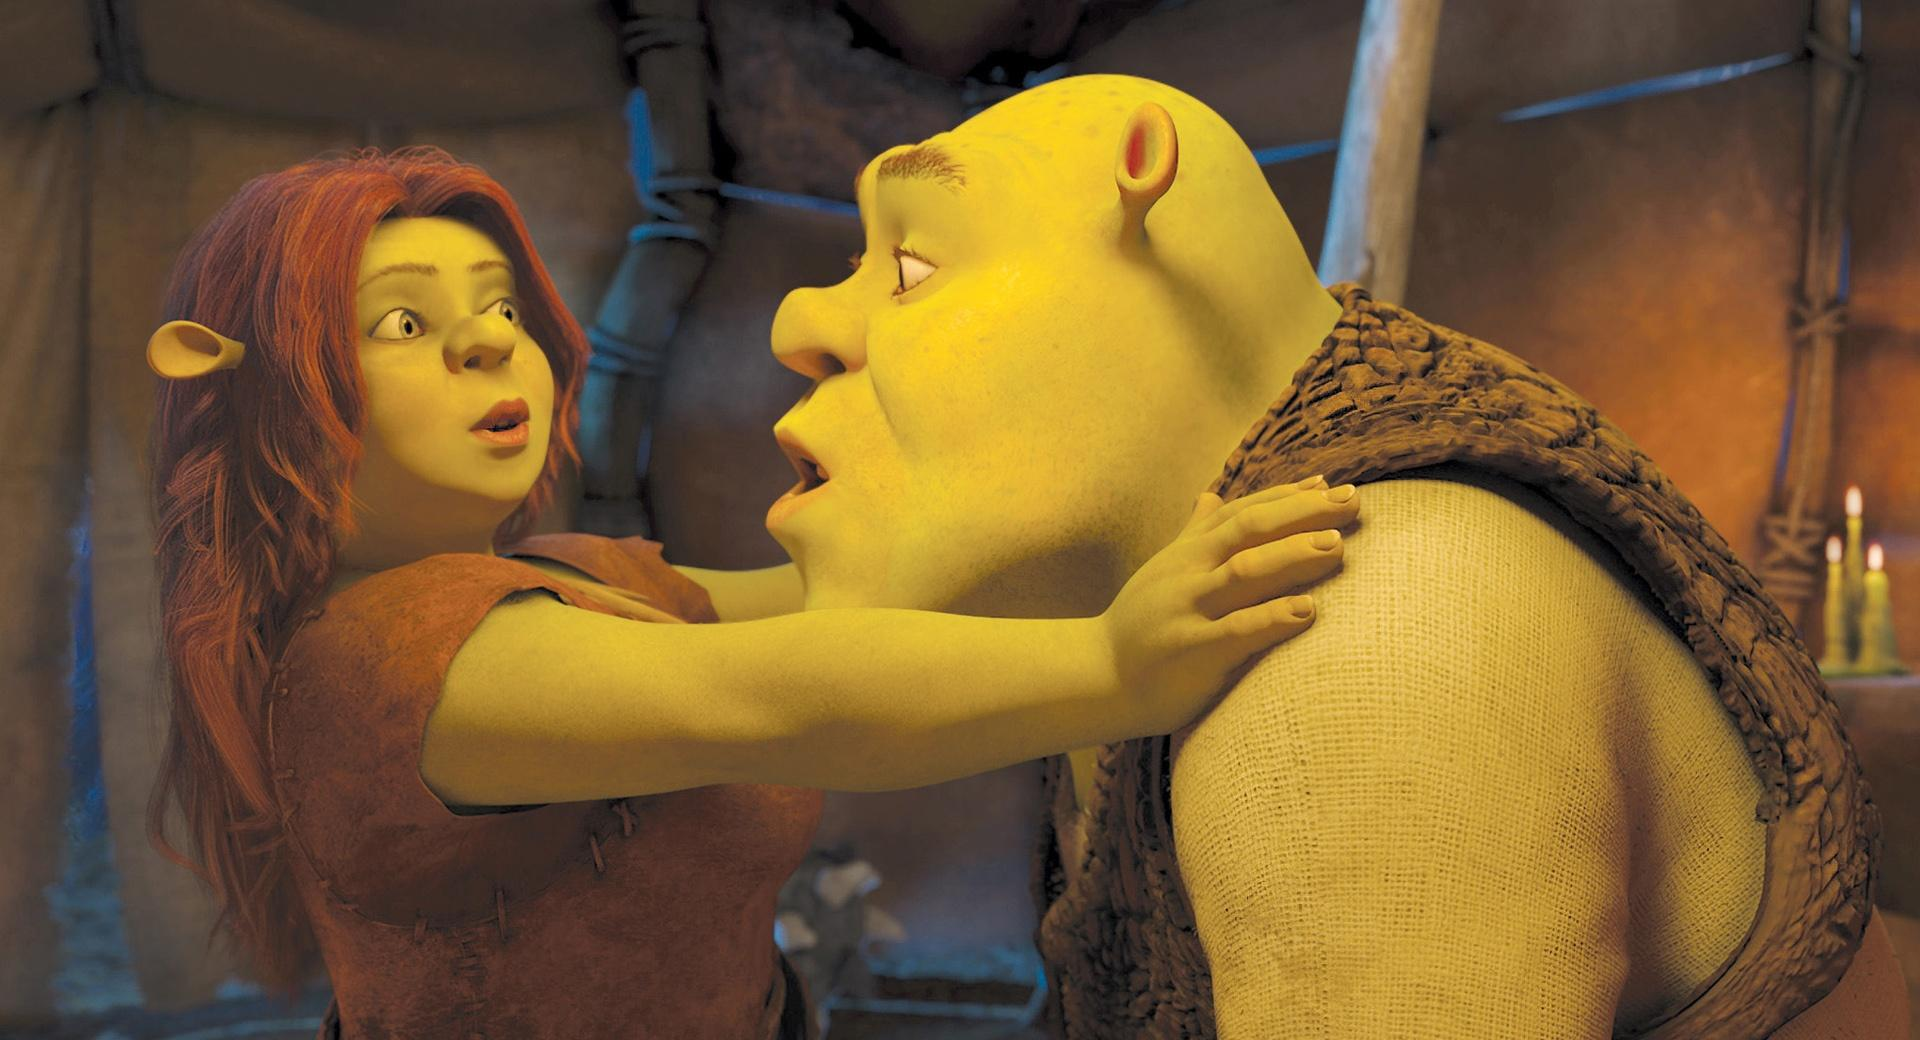 Princess Fiona and Shrek wallpapers HD quality